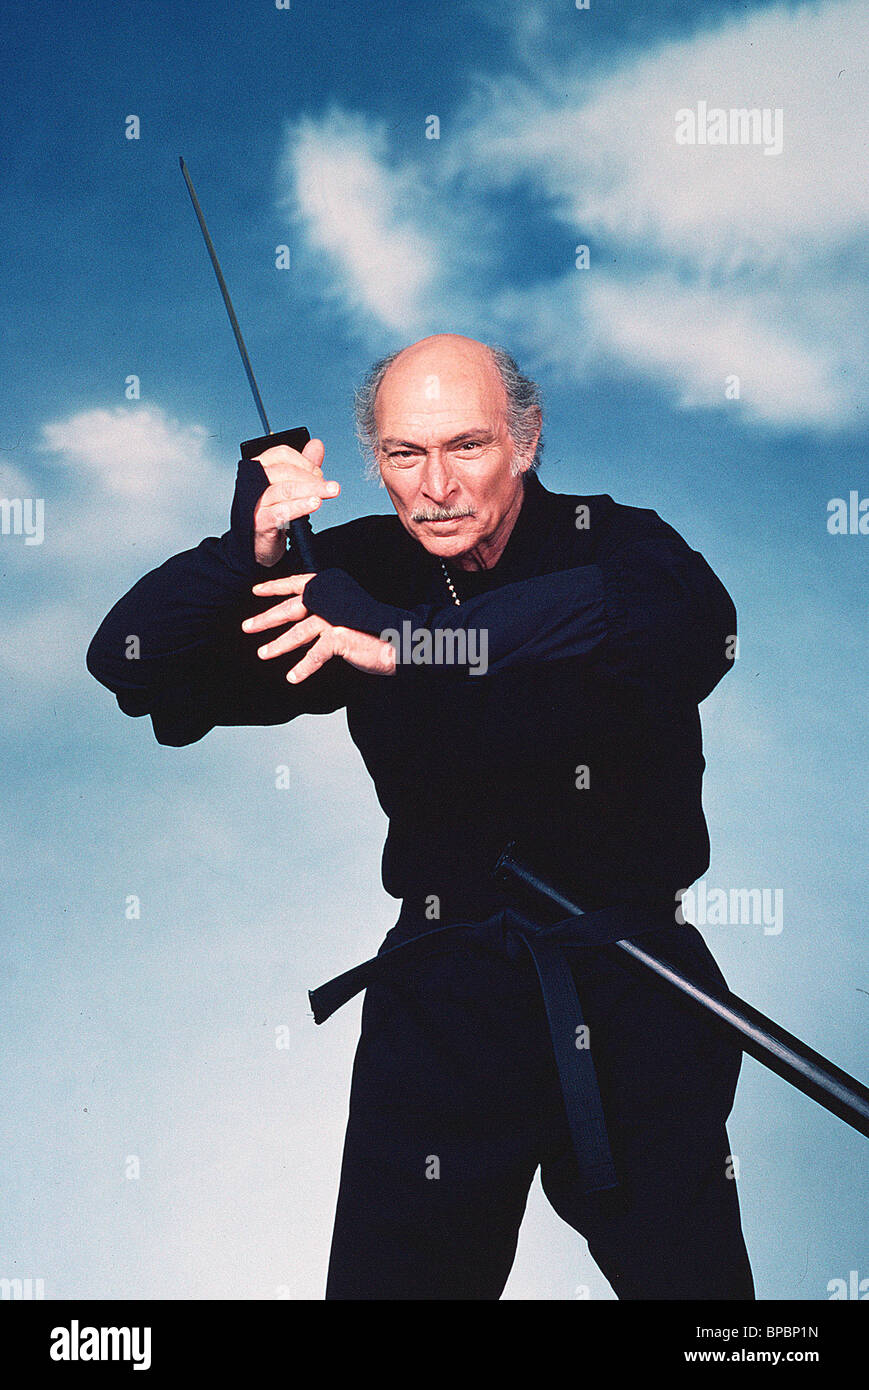 LEE VAN CLEEF THE MASTER (1984 Stock Photo, Royalty Free Image ...